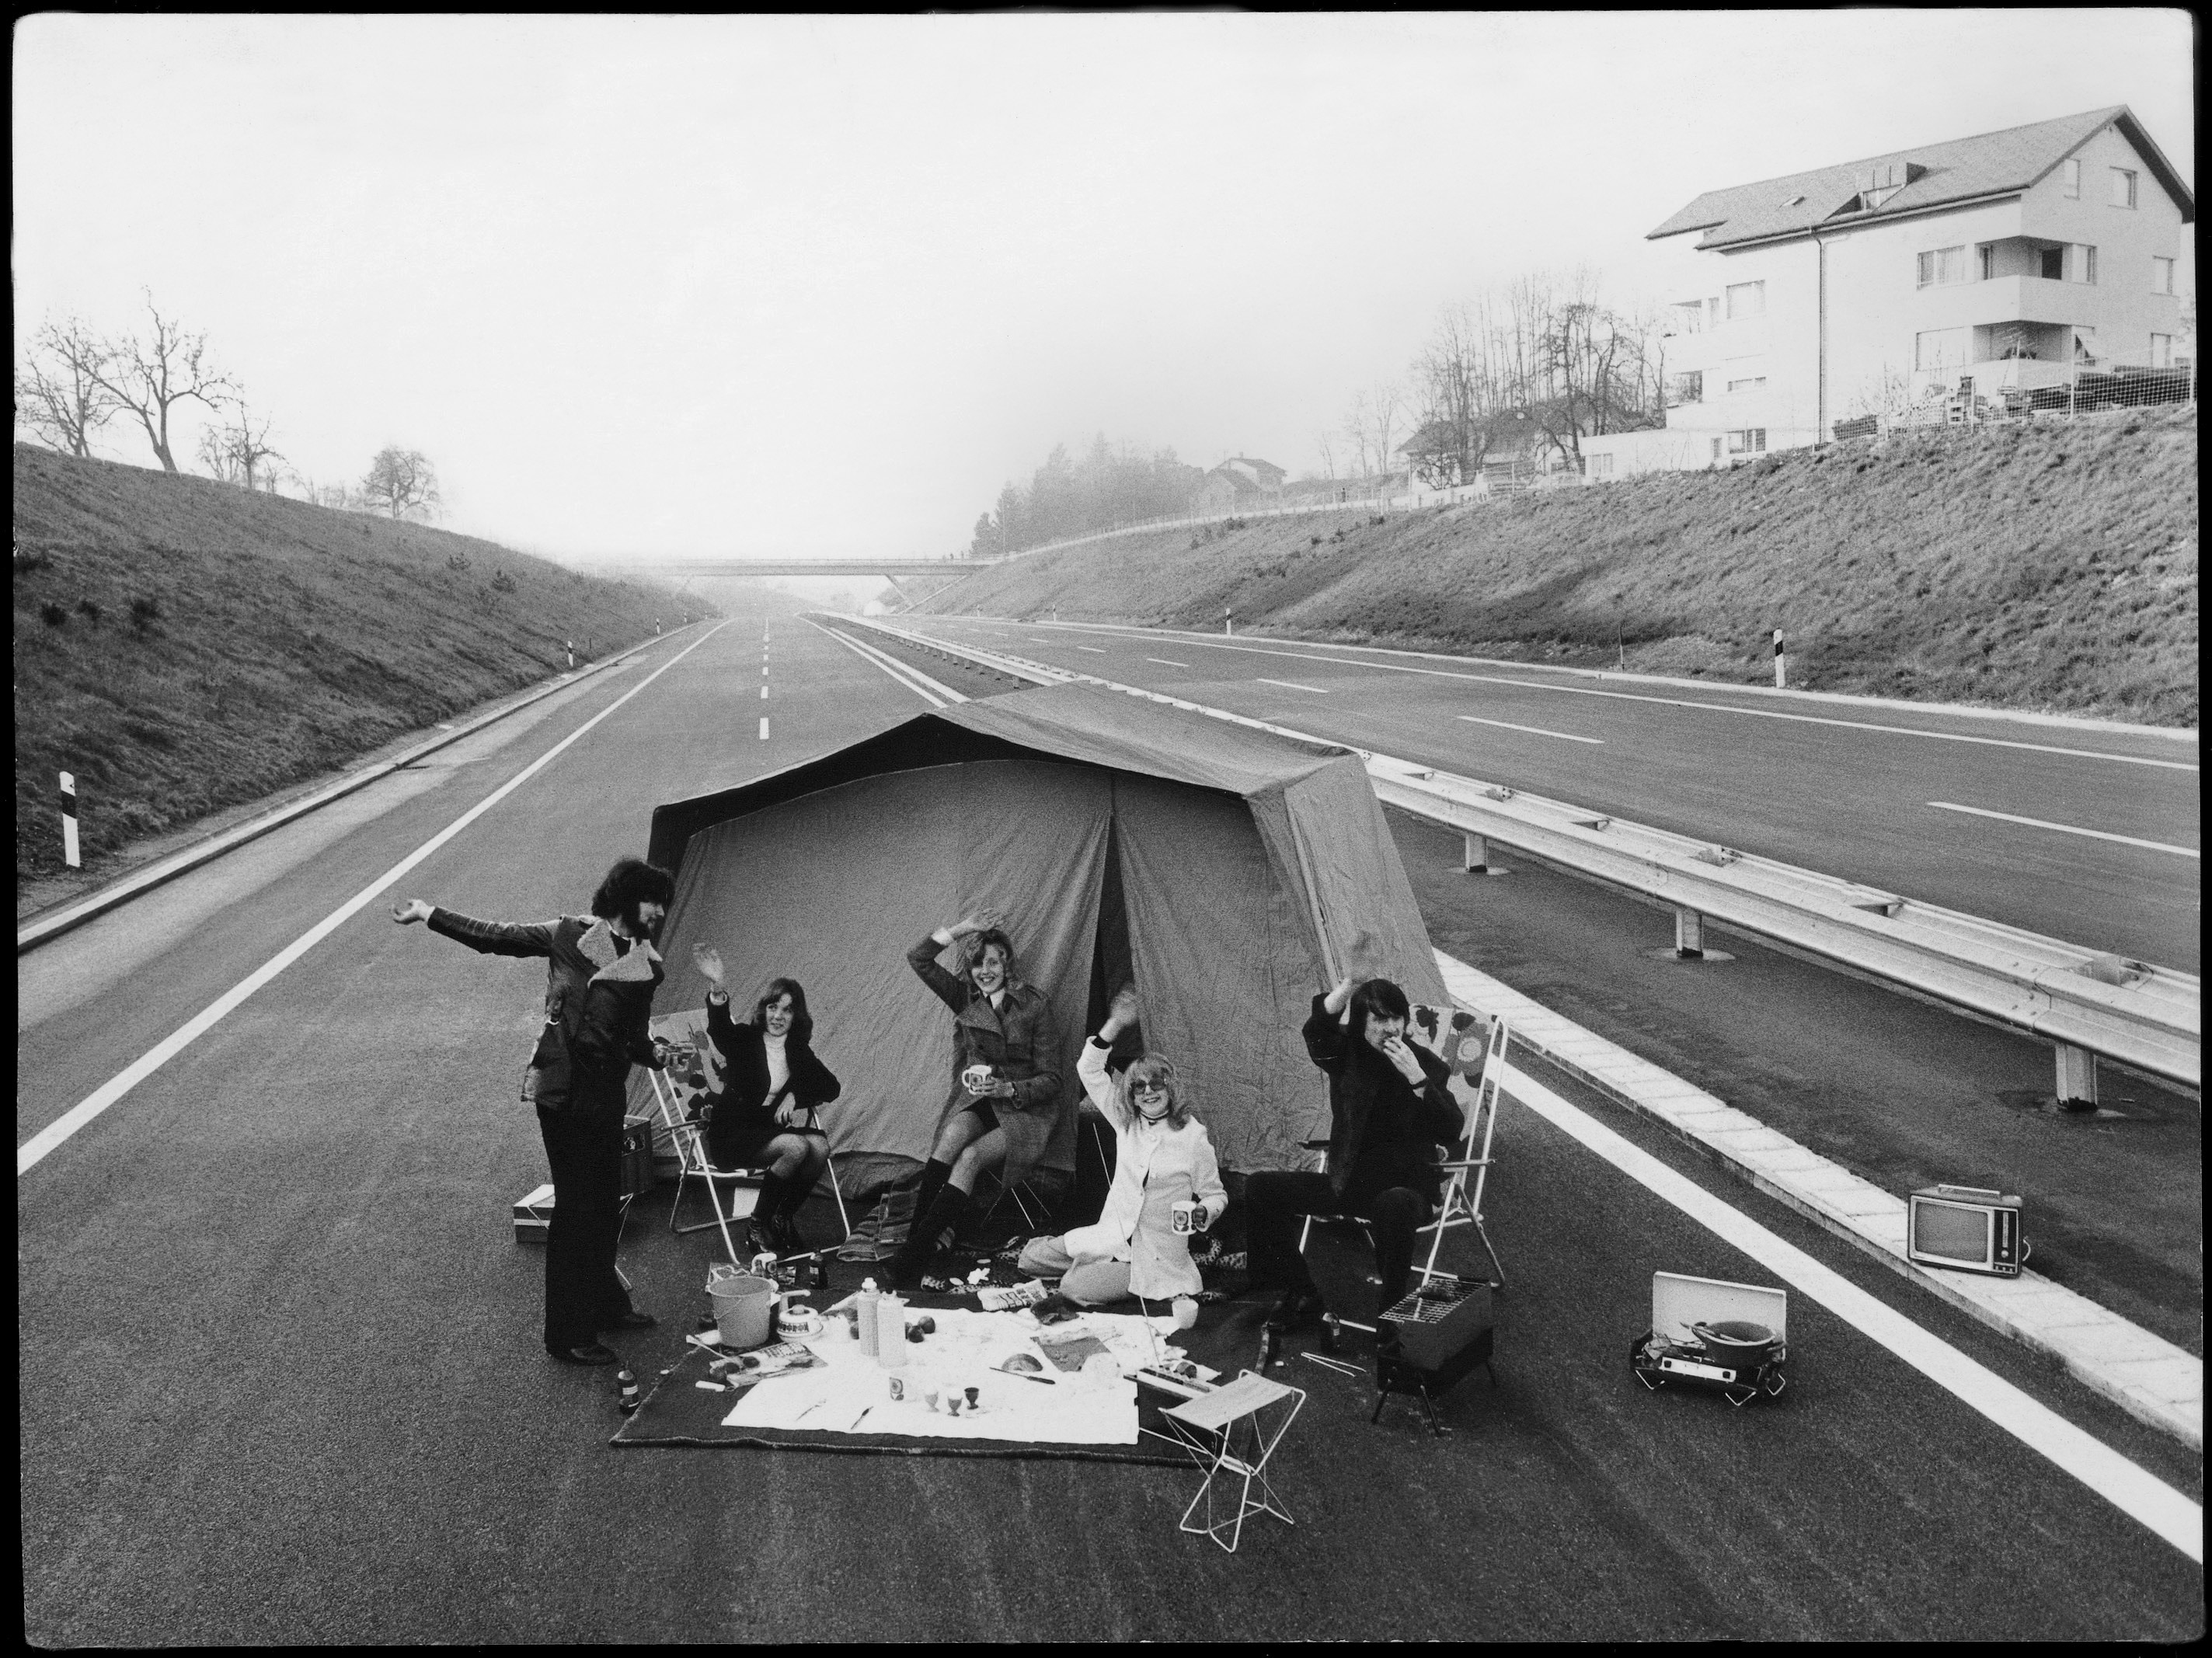 Camping on A1 Highway, 1973